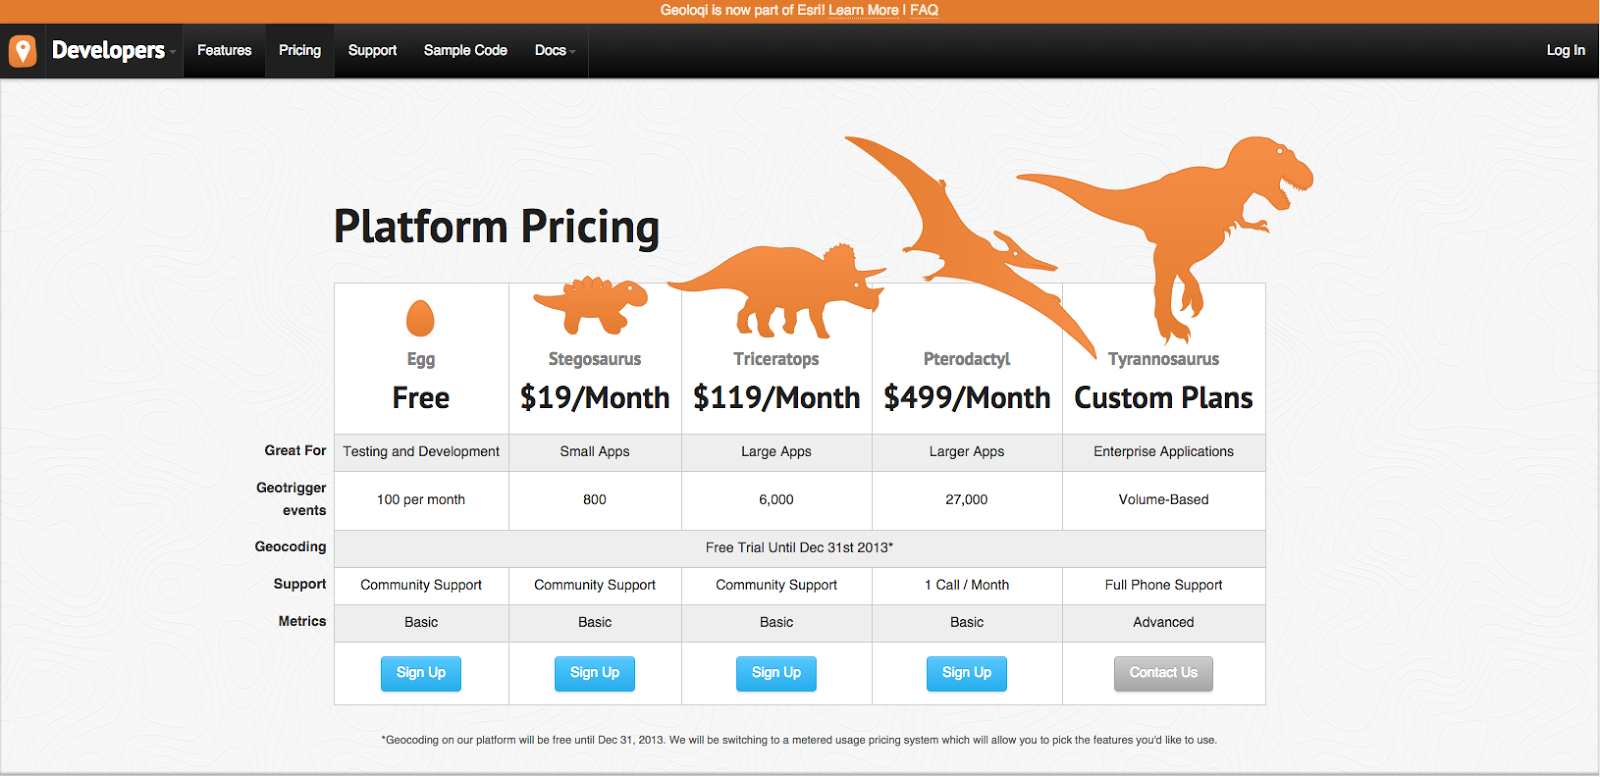 increase-pricing-page-conversions-geoloqi